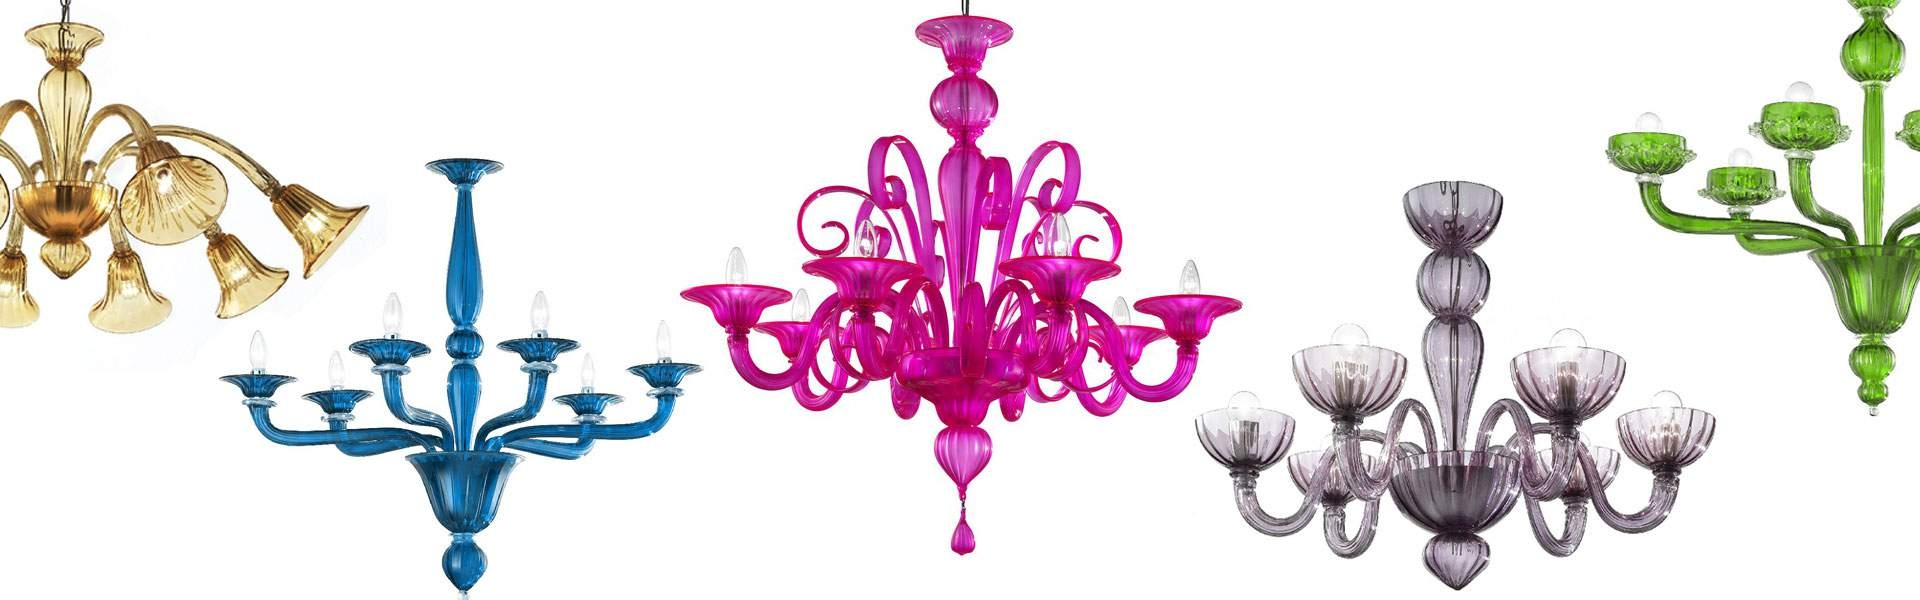 Murano Chandeliers Murano Glass Chandeliers For Sale From Italy Inside Coloured Chandeliers (View 12 of 15)